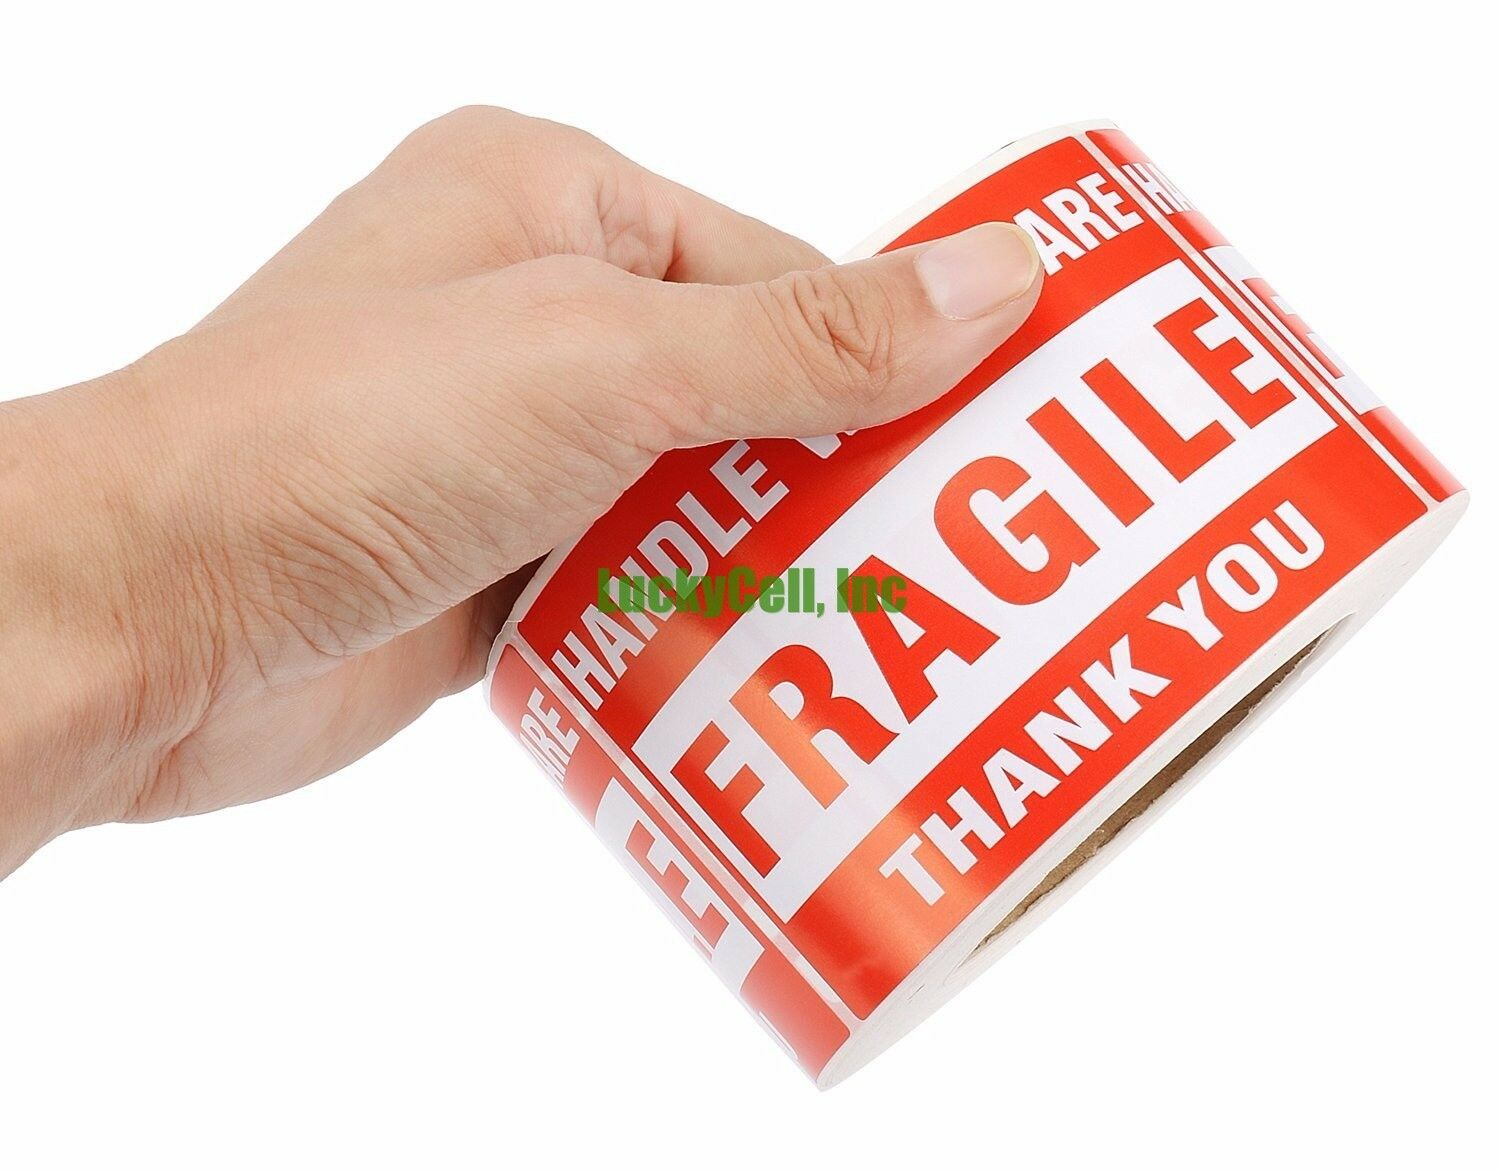 2000 Labels 3x5 Handle With Care Fragile Label Sticker 2 Rol